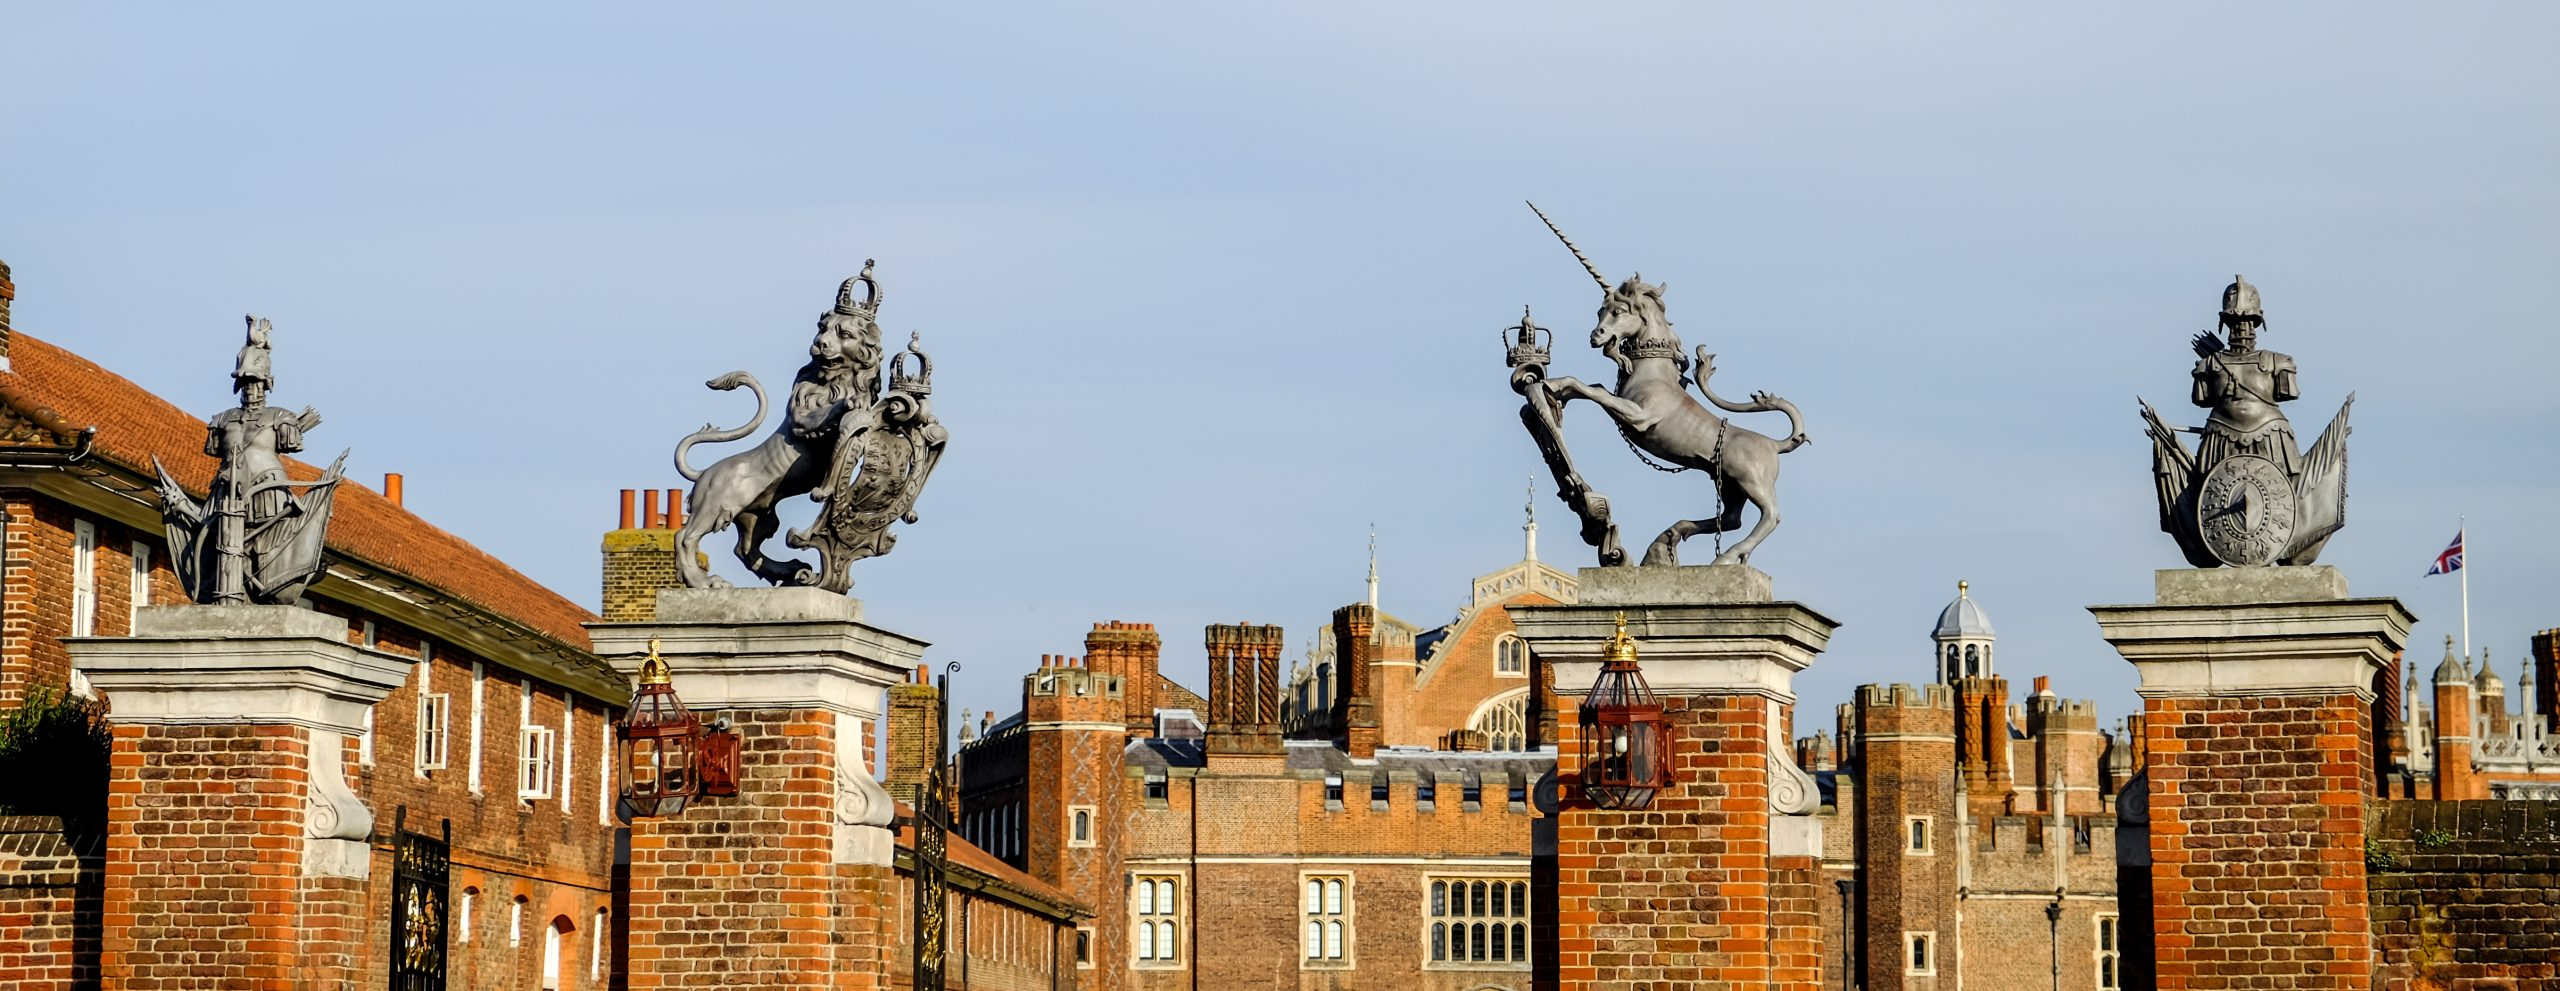 The Trophy Gates Hampton Court Palace Sculpture Conservation